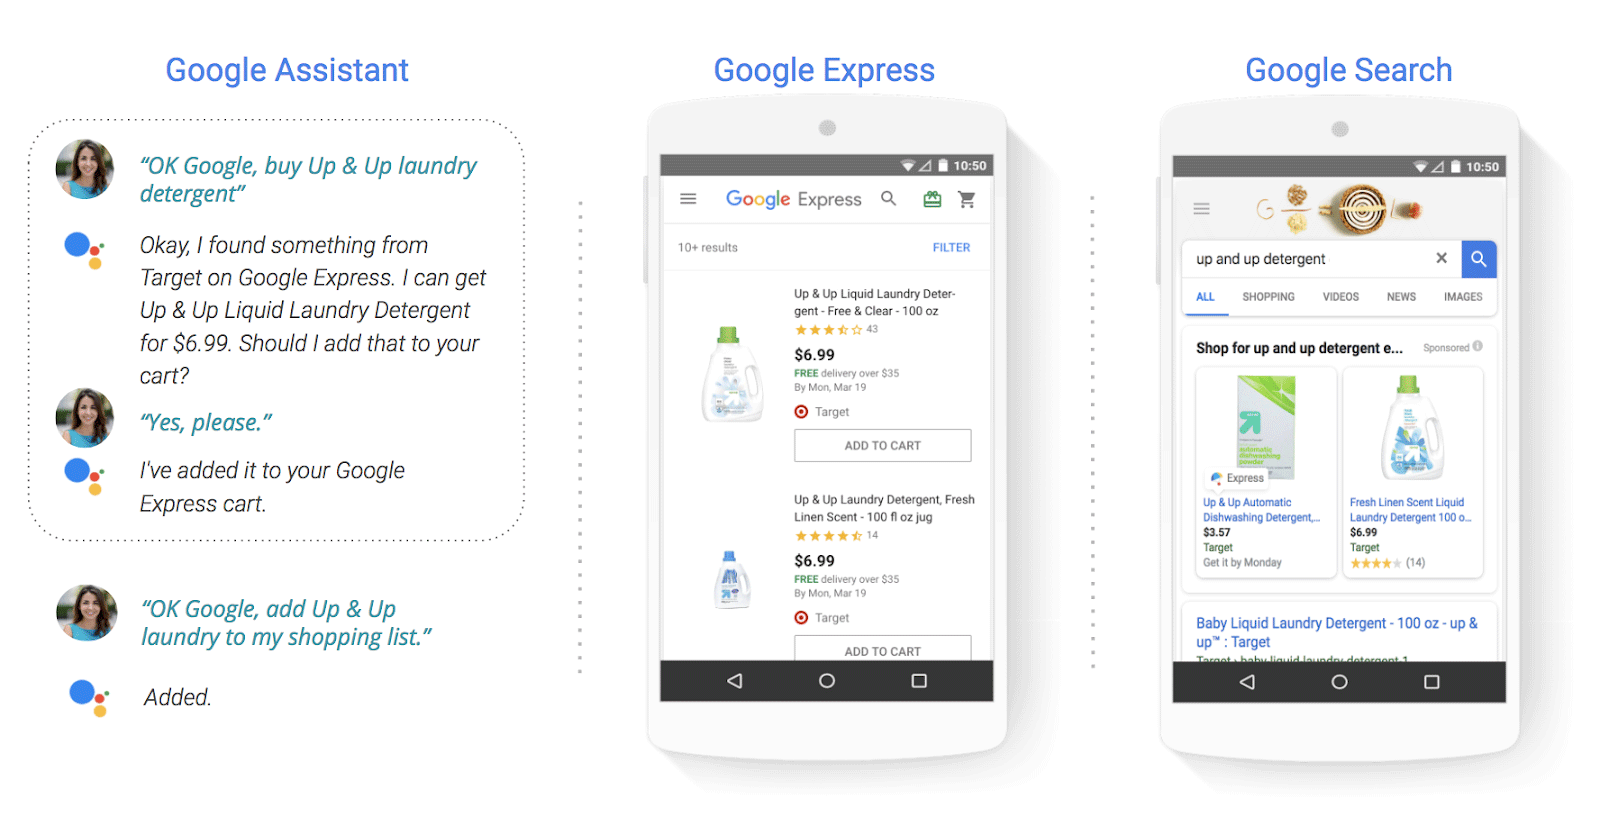 Google Search & Assistant Now Selling Products Directly